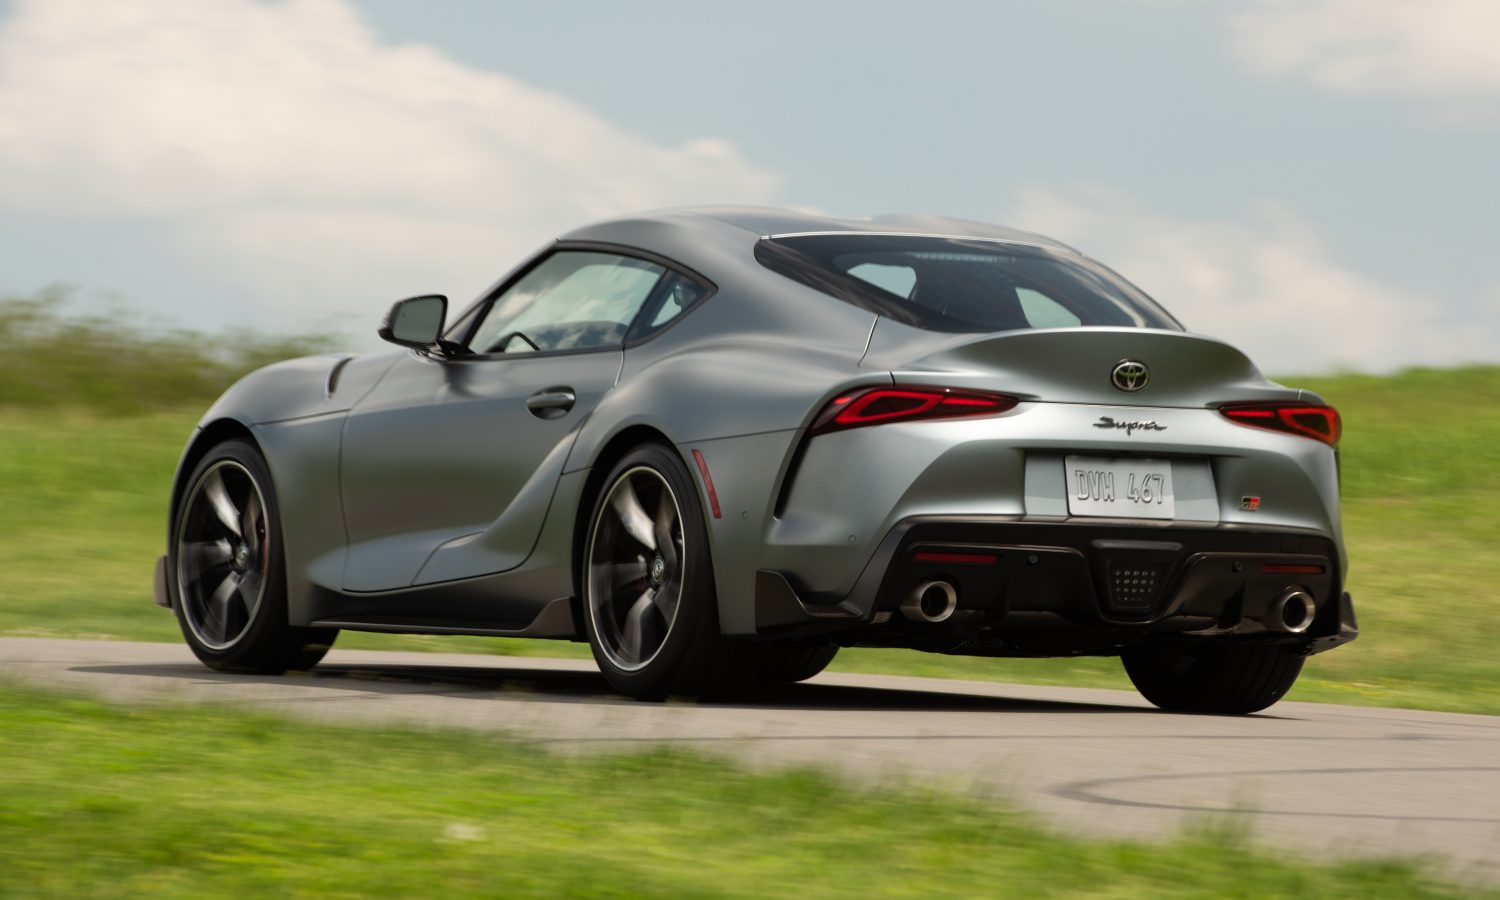 Toyota Supra: An Icon A Half-Century in the Making